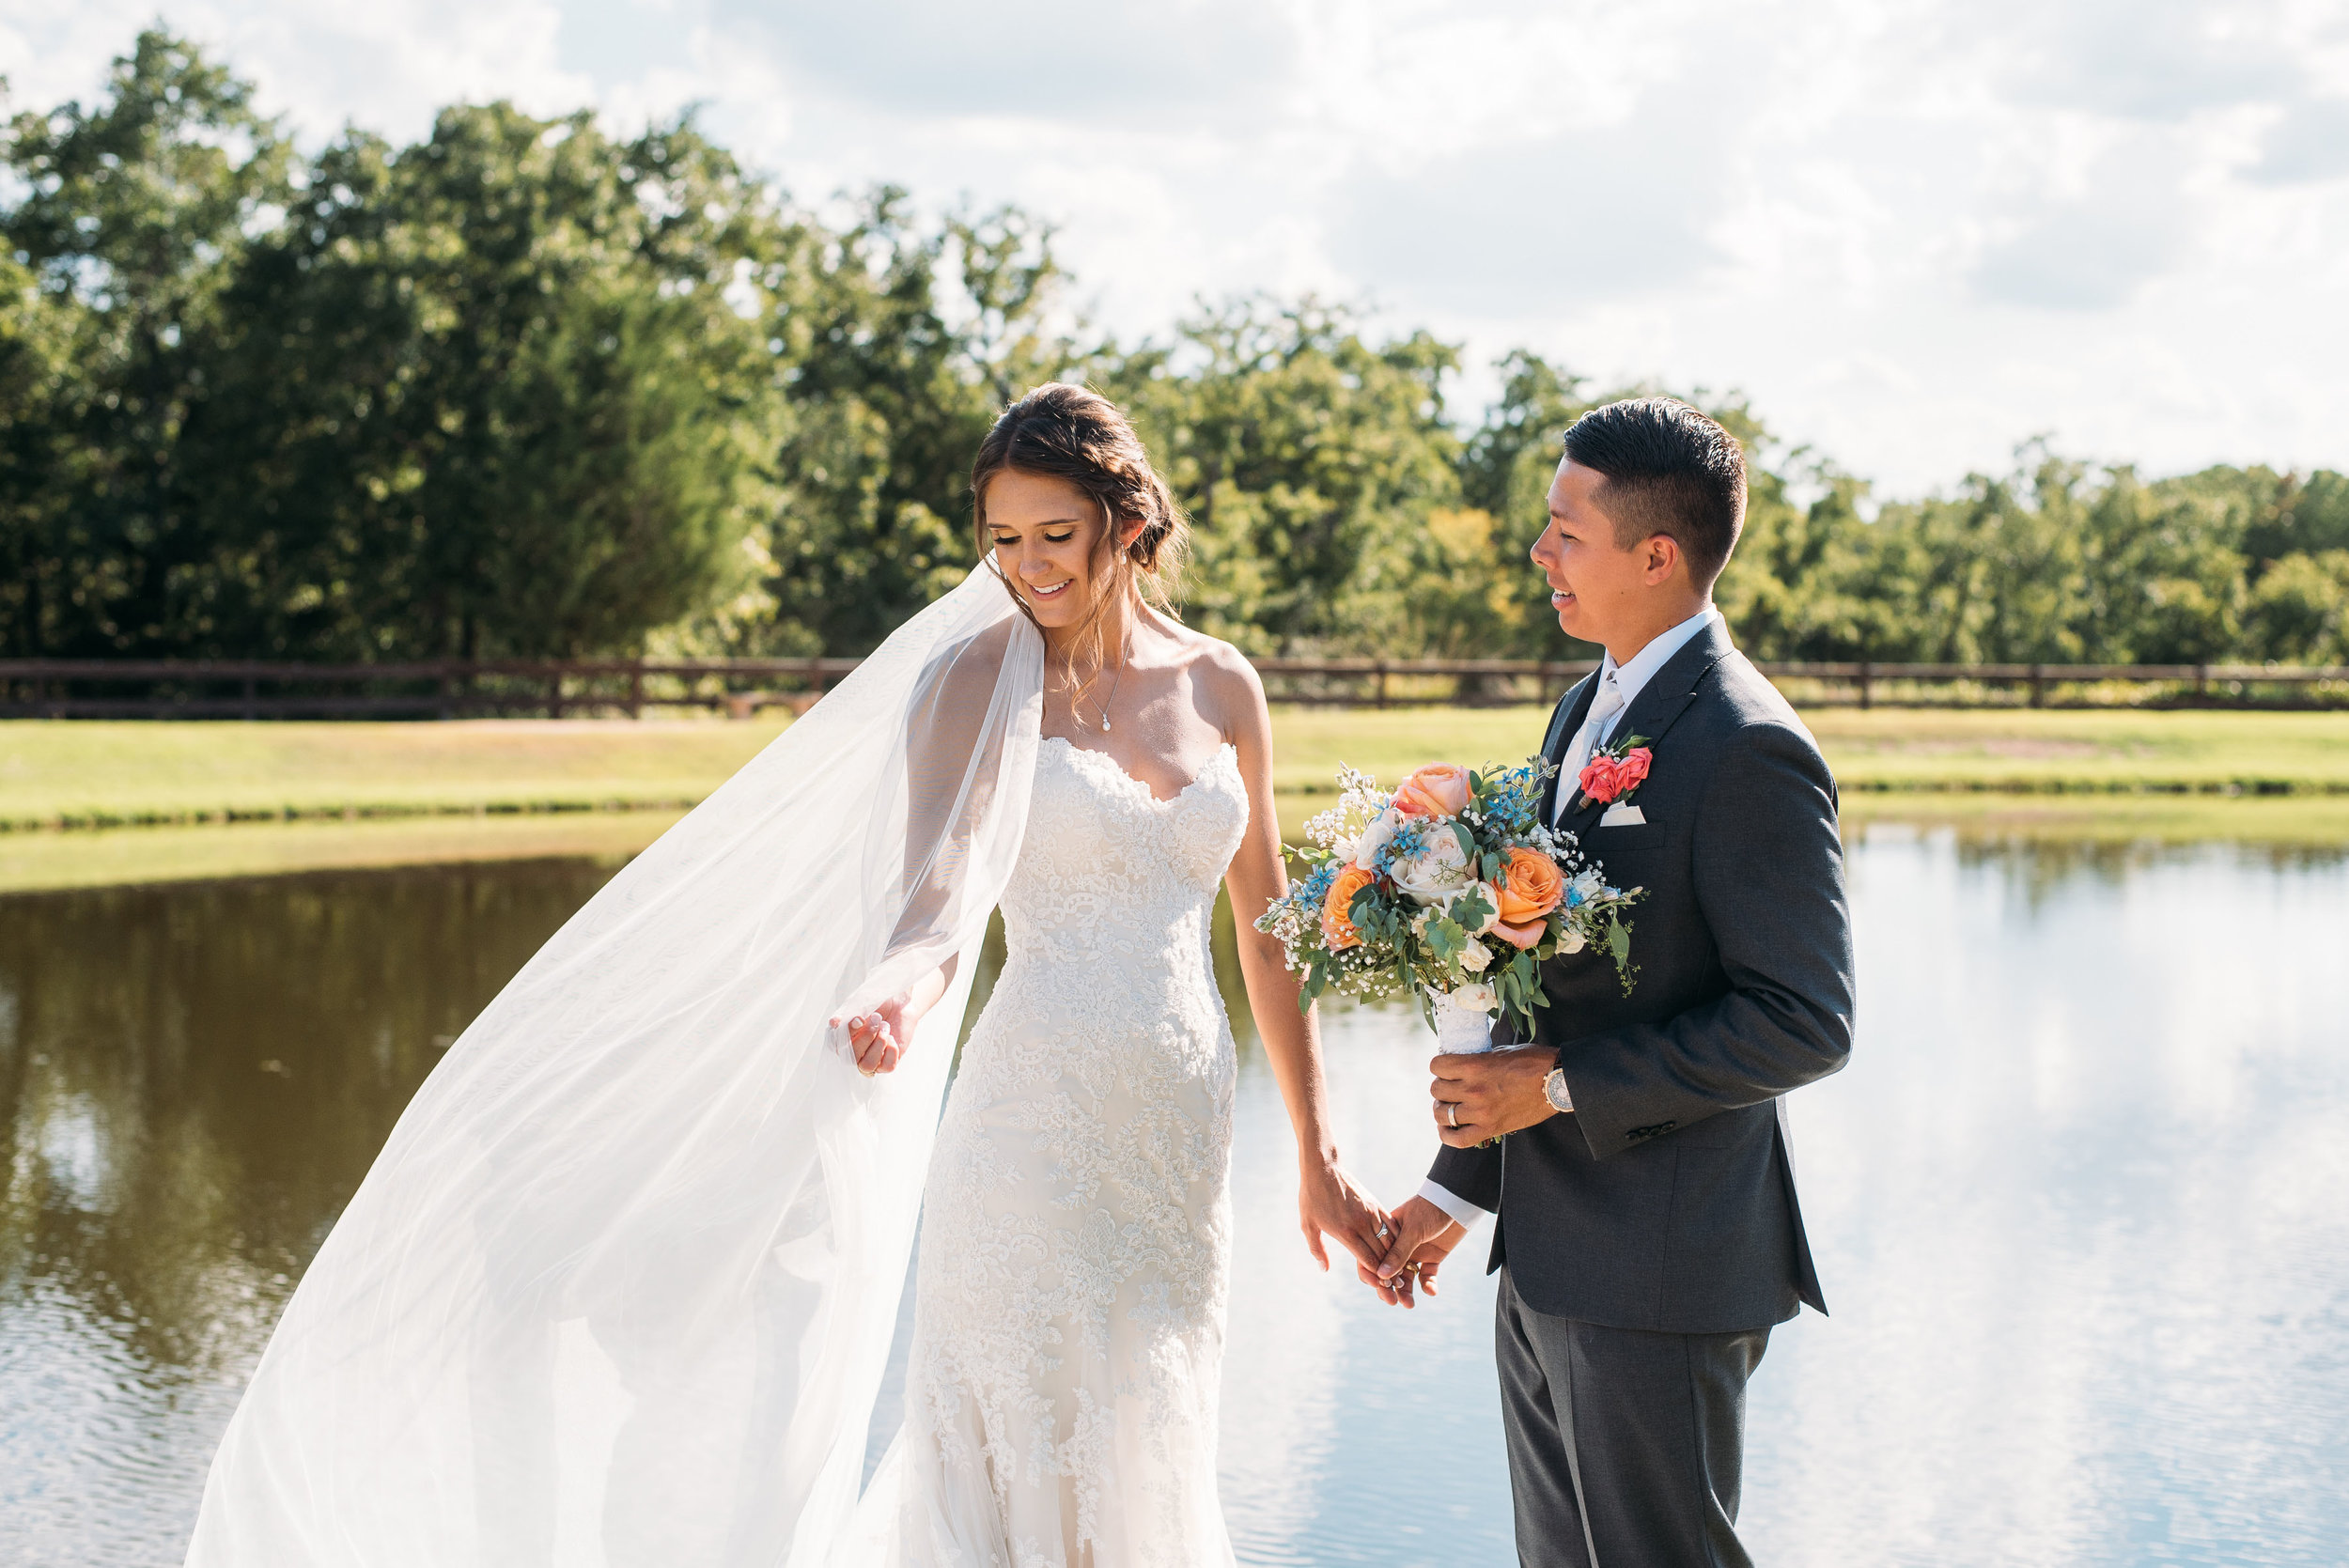 Cameron-Price-Peach-Creek-Ranch-Wedding-Ceremony-Bridals-Engagement-College-Station-Photographer-Videographer-San-Angel-Photo-00-0079.jpg